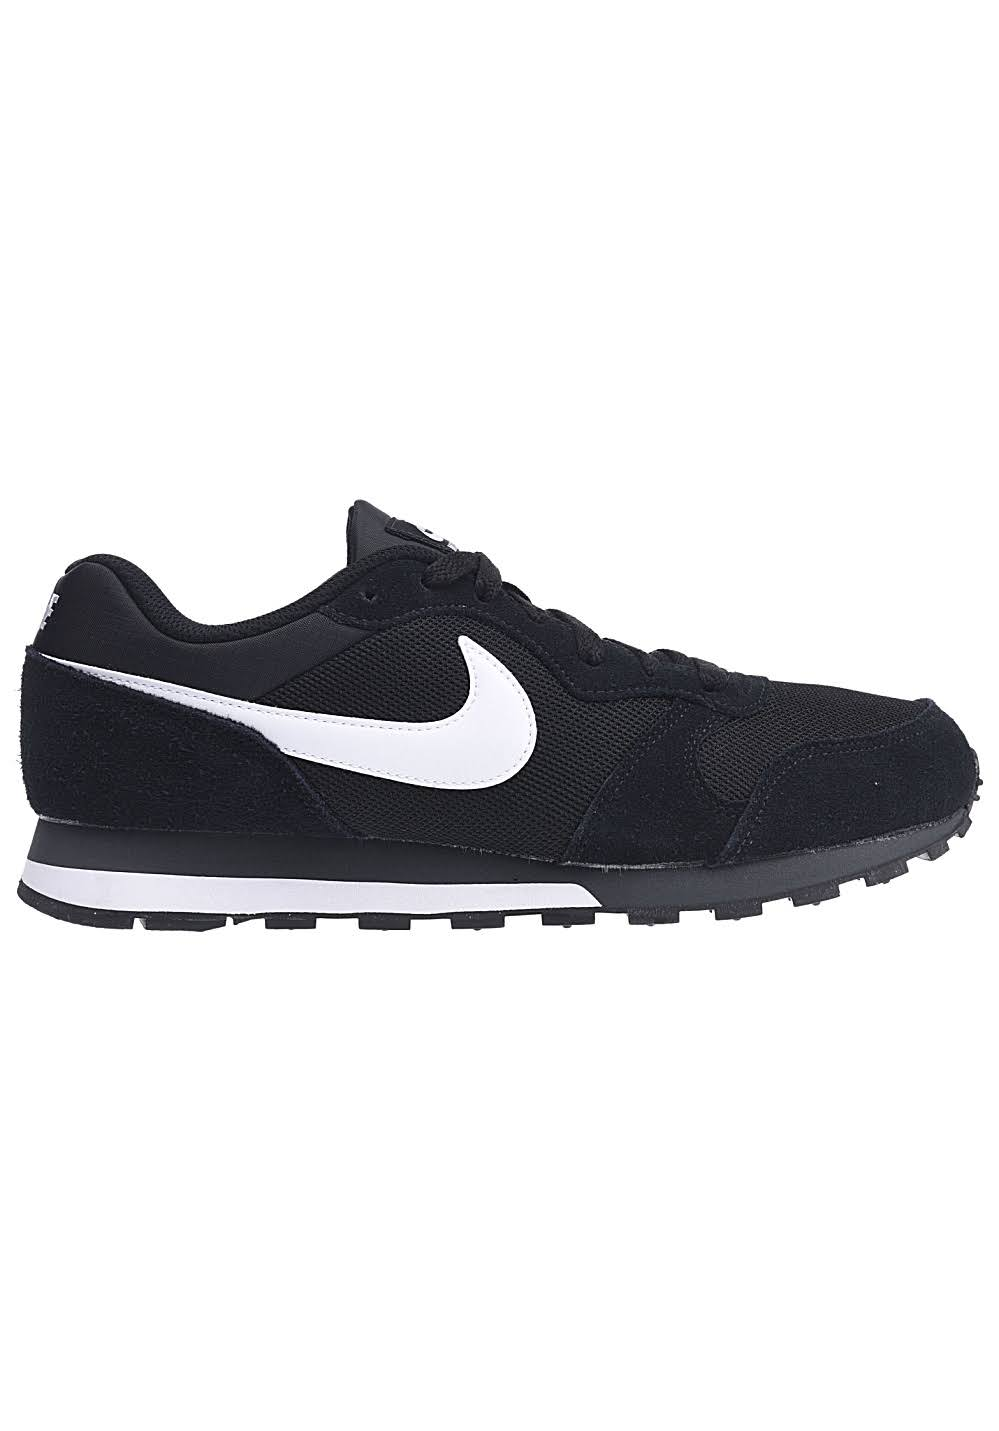 Md Runner 2 Sneakers Wit Zwart Heren Nike xsrdhtQC